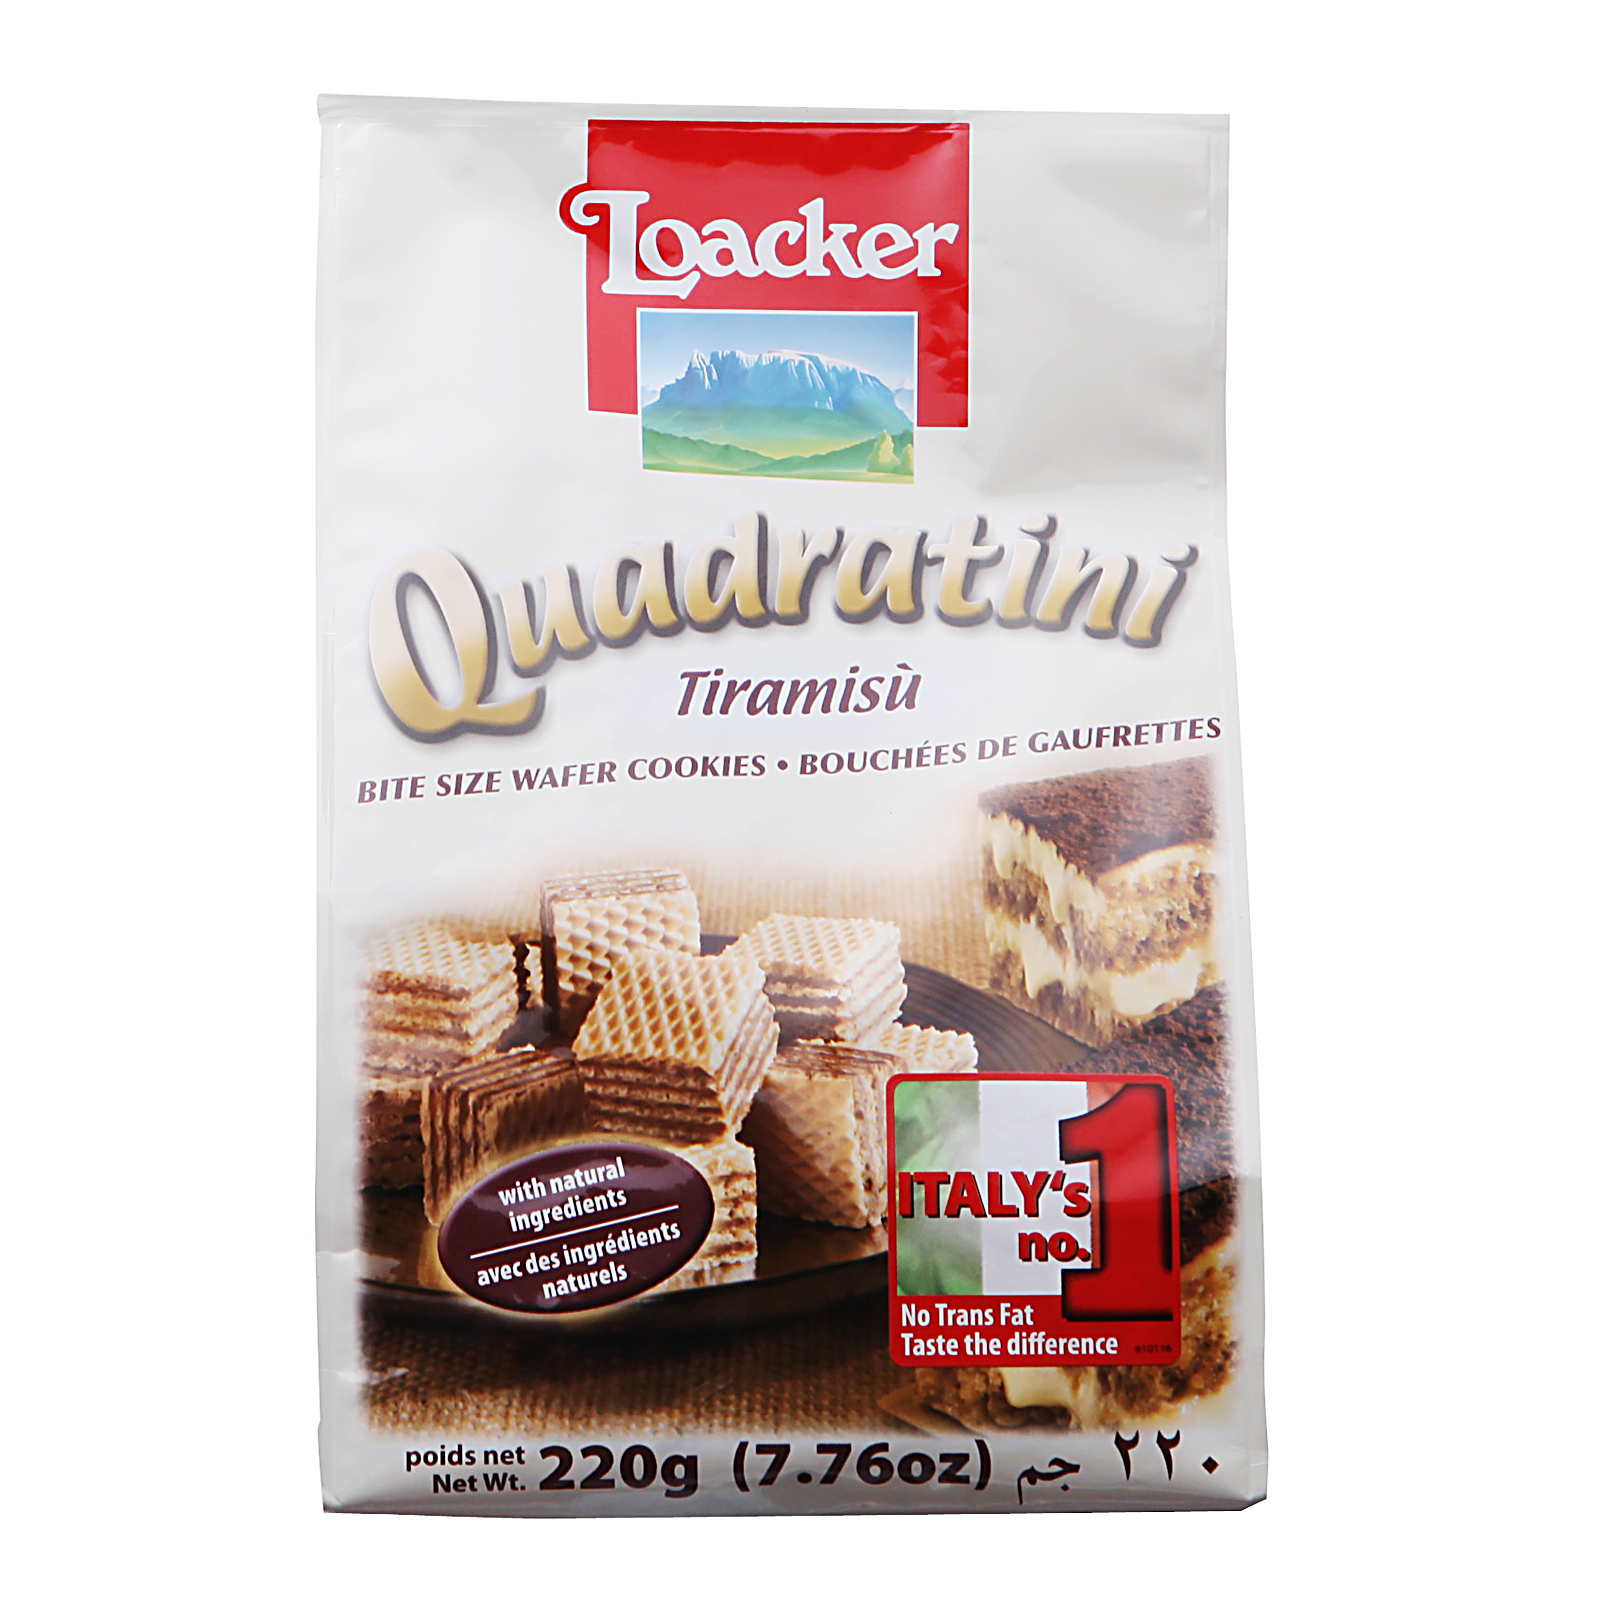 Loacker Wafer Cookies Quadratini Tiramisu